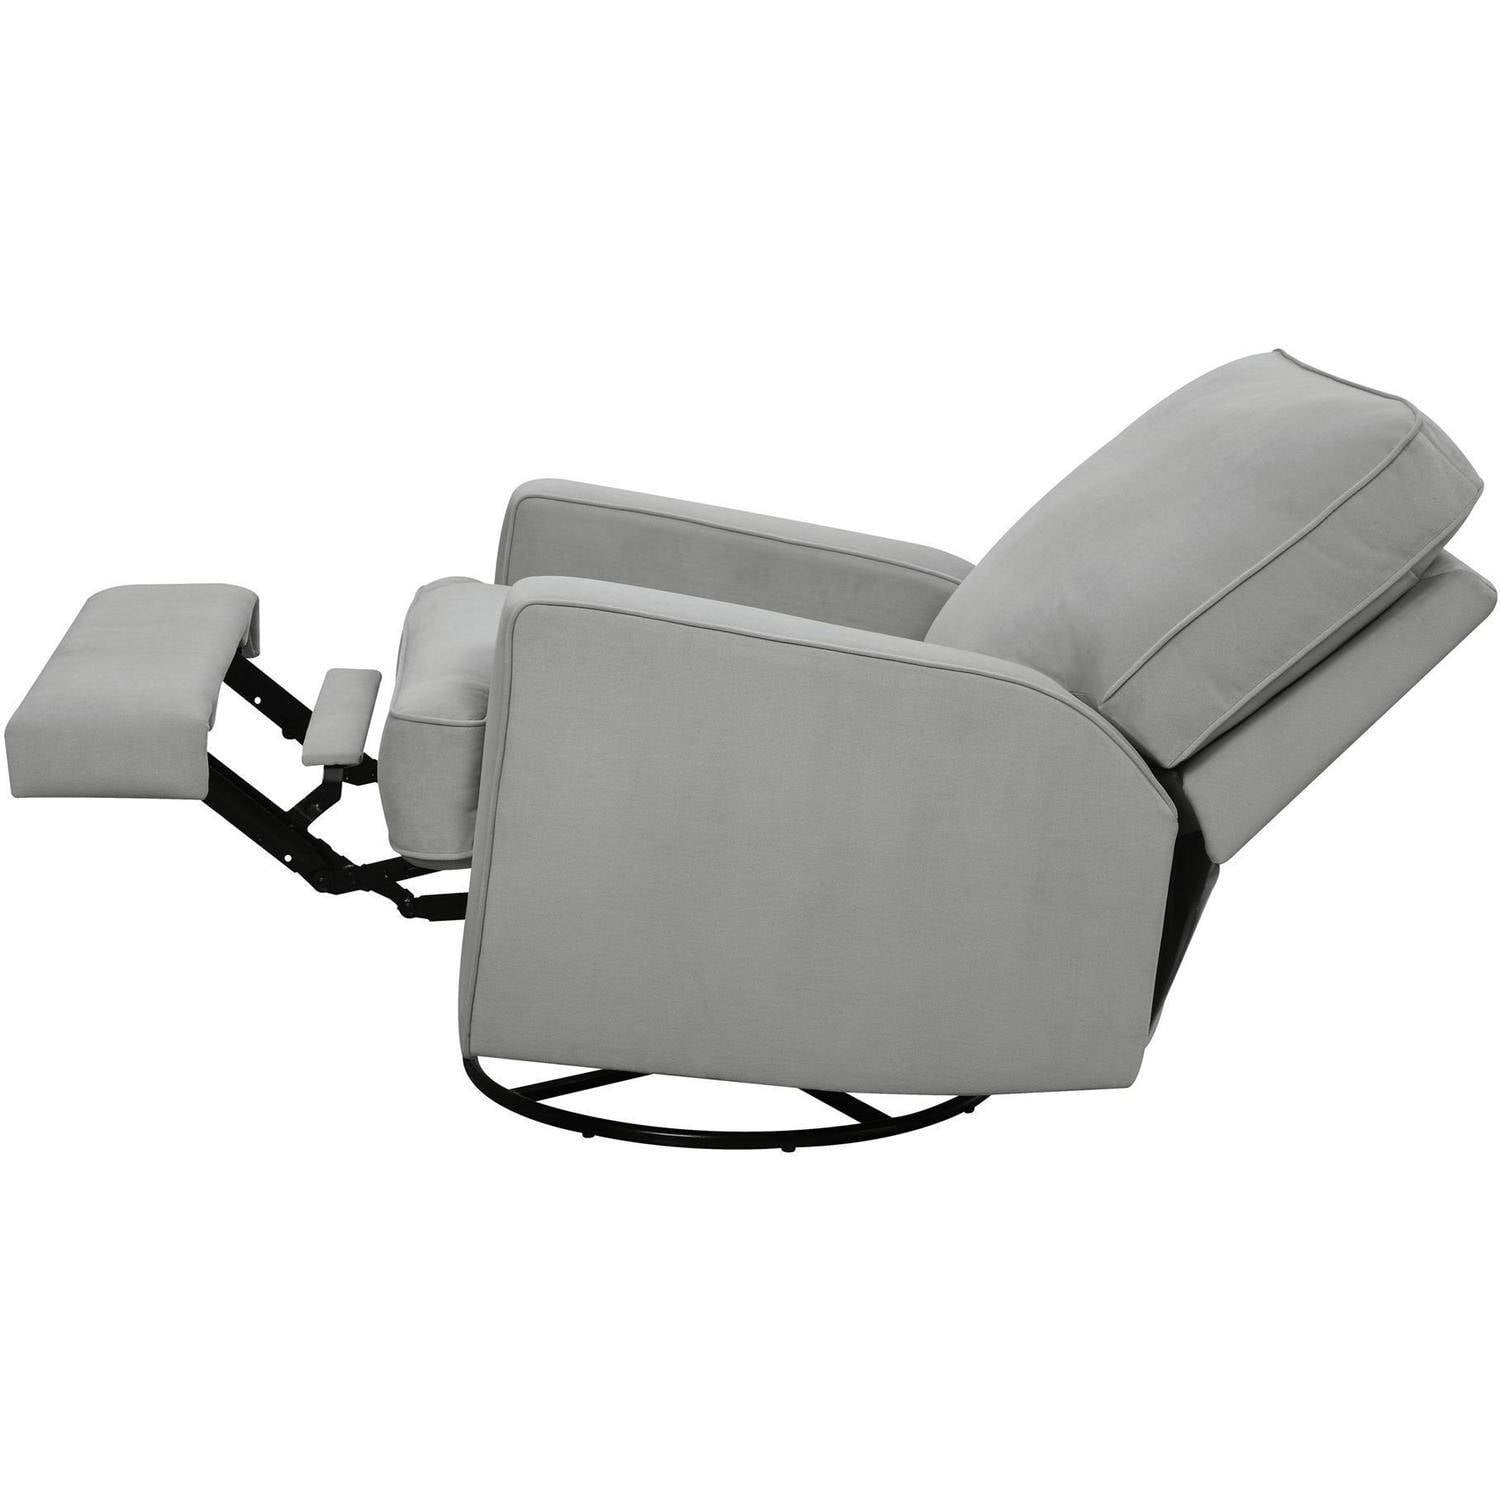 Baby Relax Rylan Swivel Gliding Recliner (Choose your Color) - Walmart.com  sc 1 st  Walmart : baby recliner seat - islam-shia.org